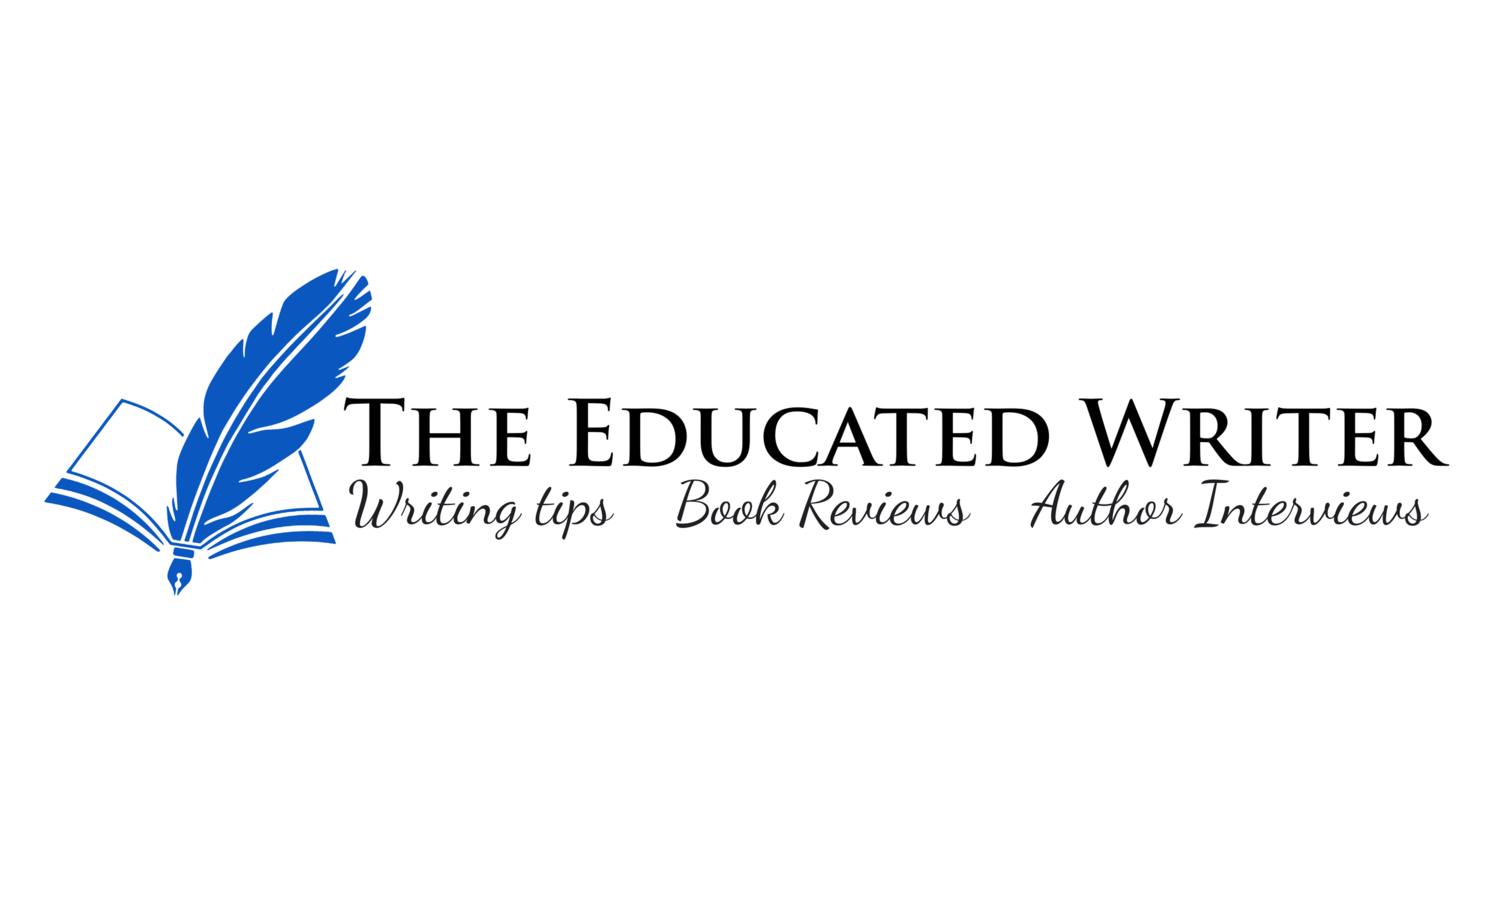 The Educated Writer